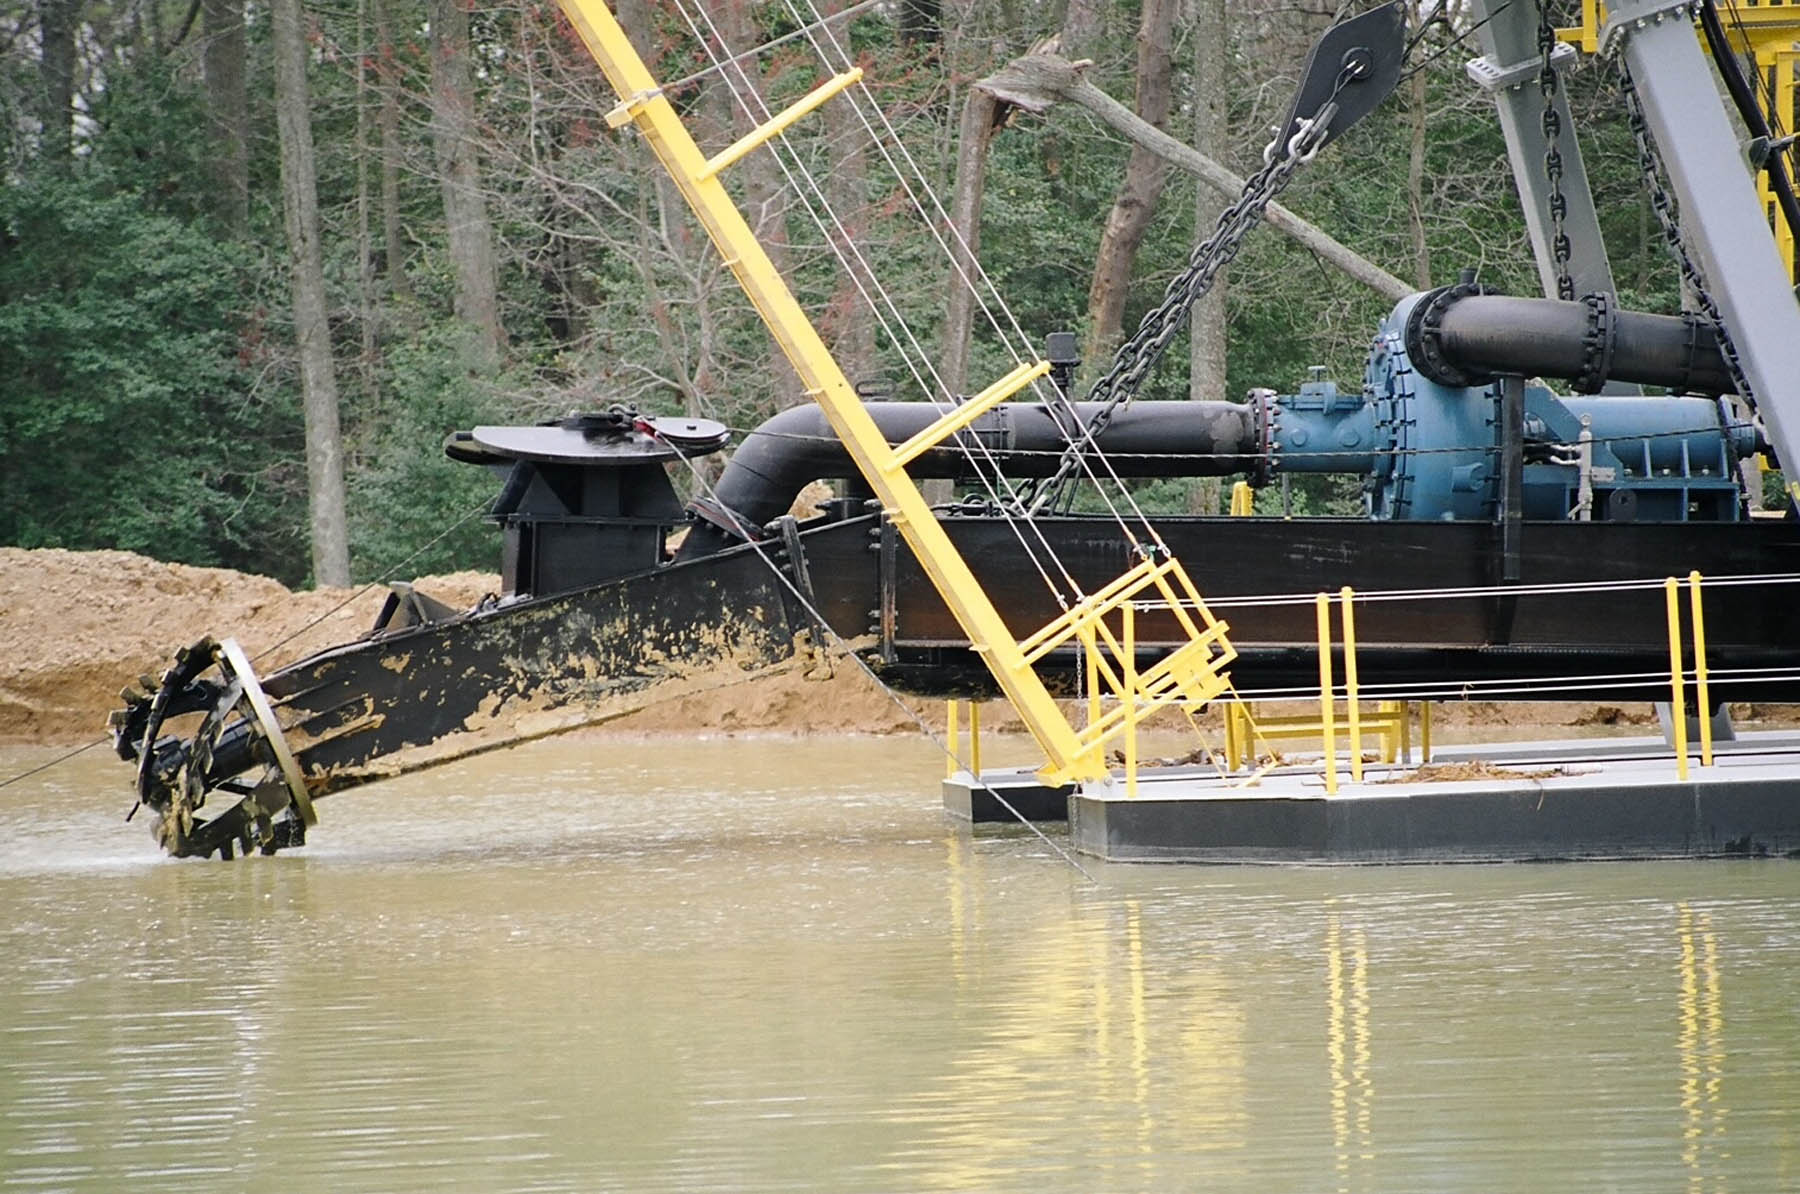 A closer view at a DSC Marlin Class dredge's cutter head being raised out of the river.